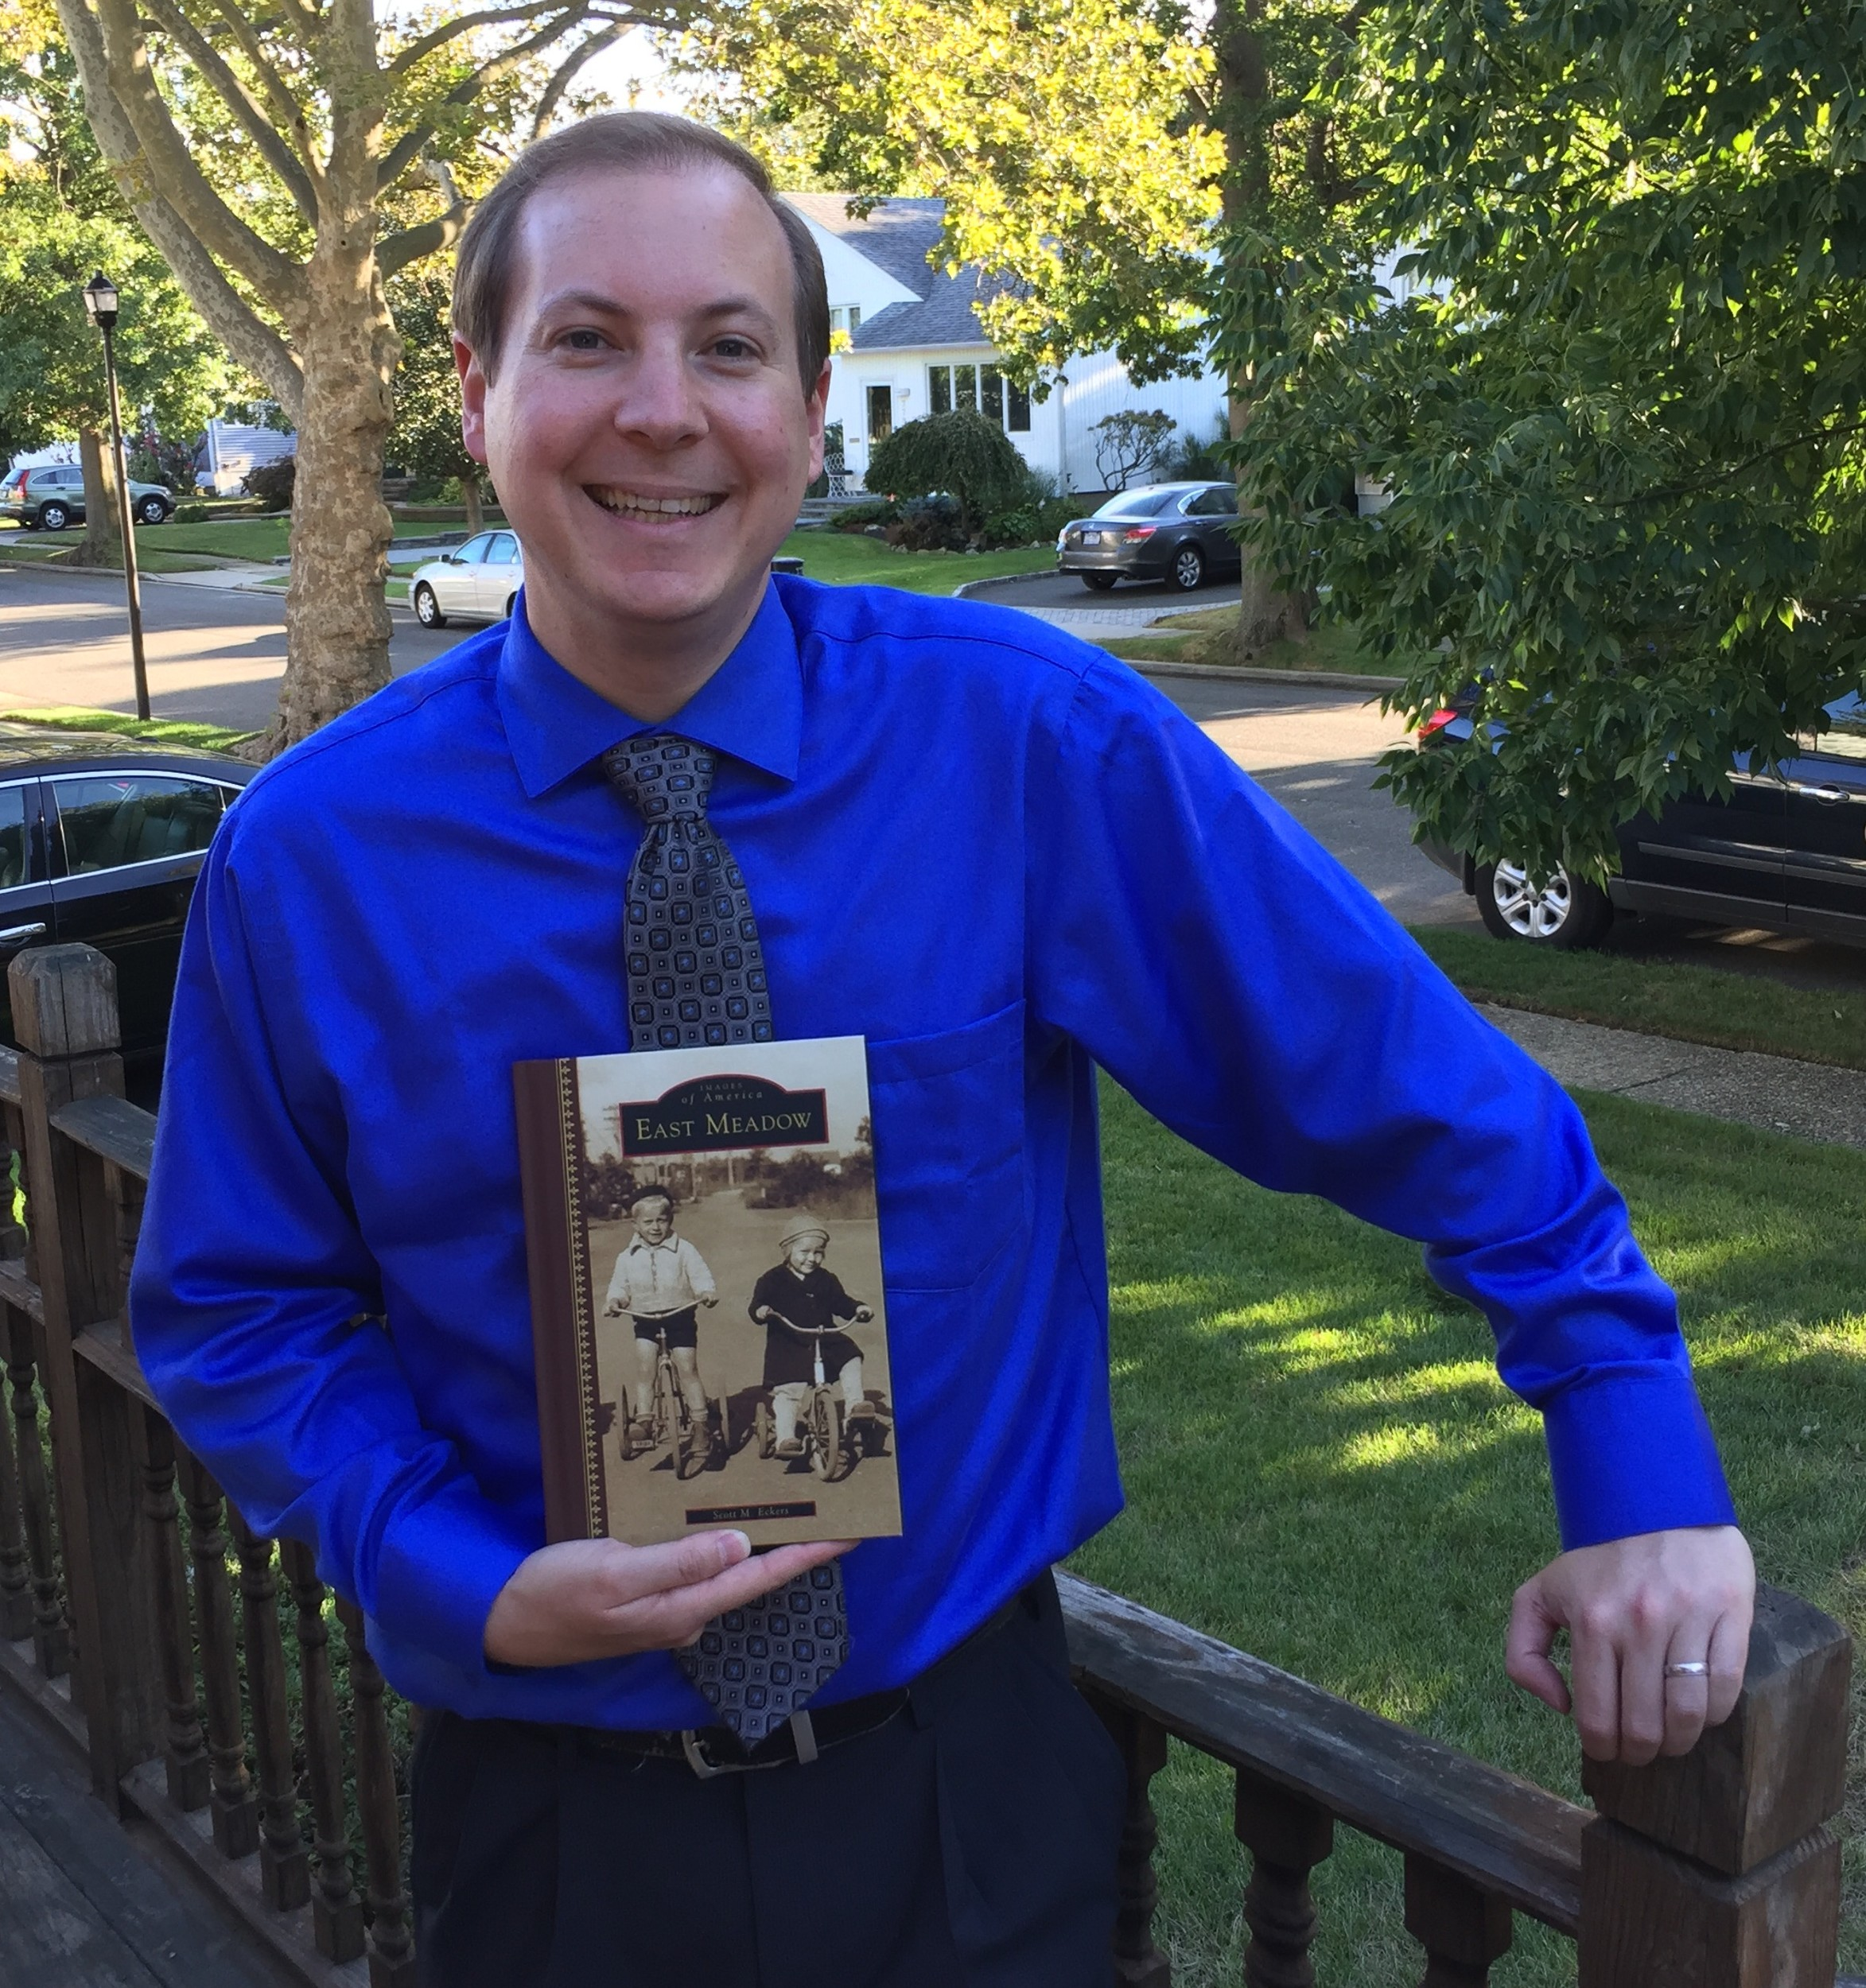 East Meadow resident-turned author Scott Eckers penned East Meadow's first history book, which hit shelves on Oct. 17.